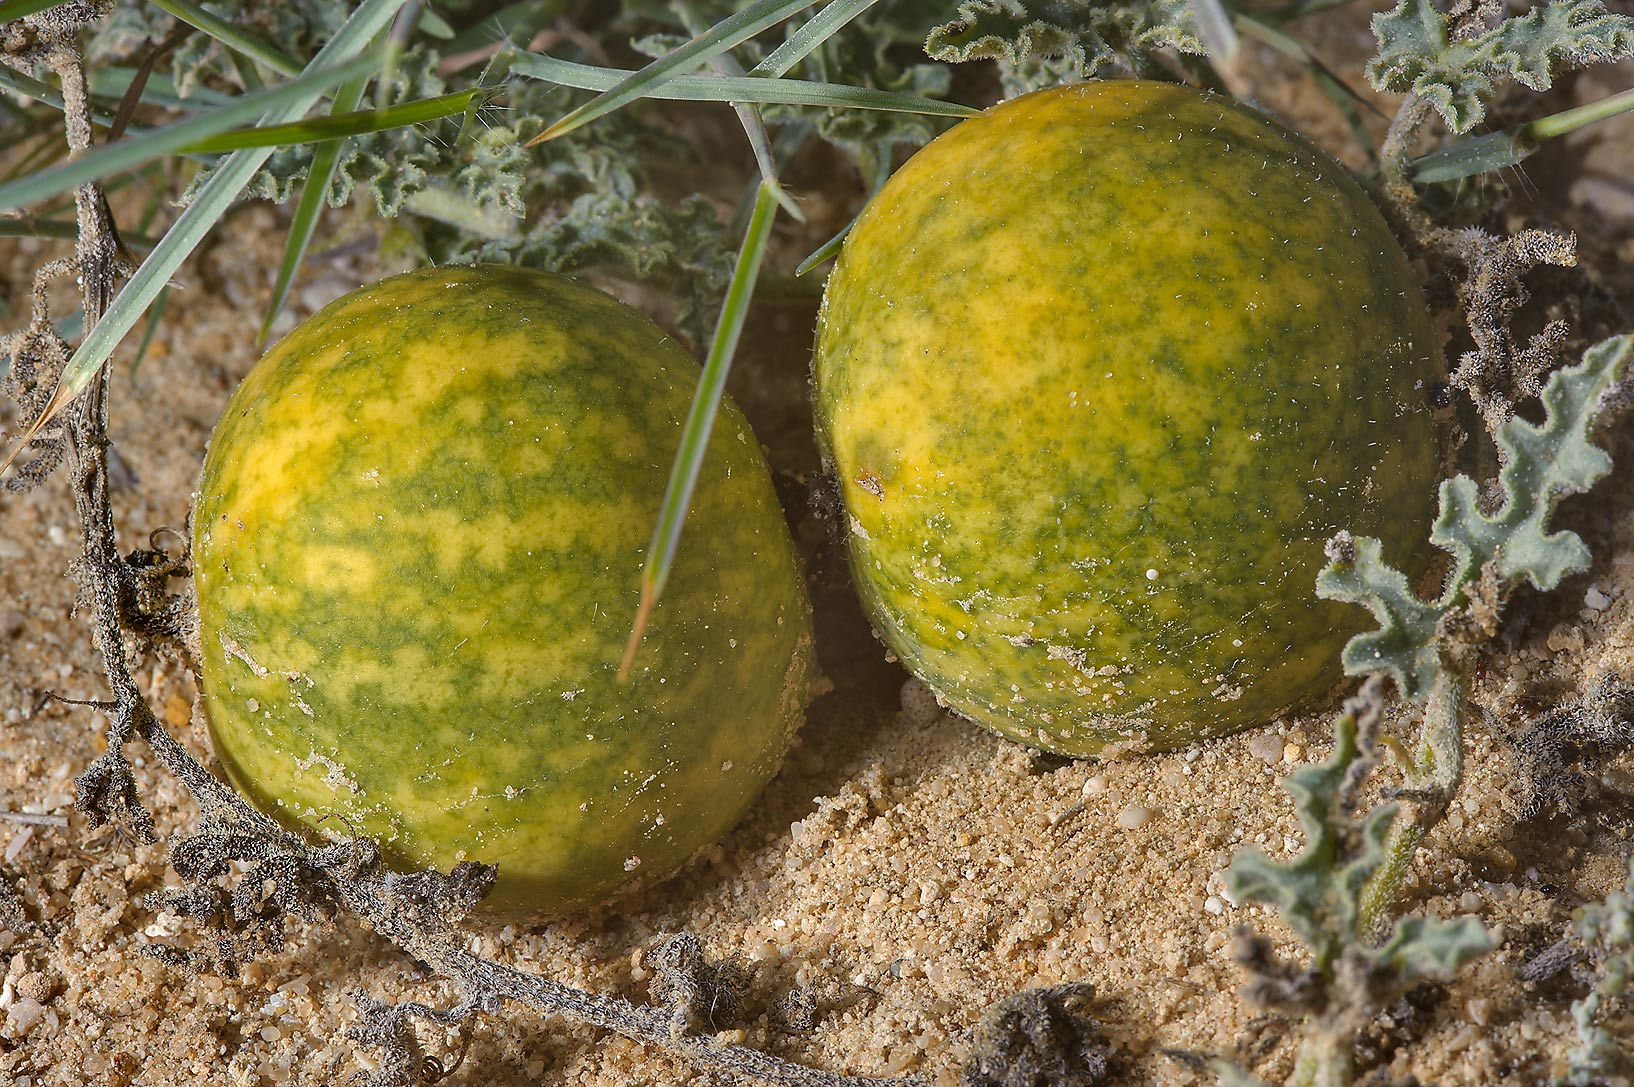 Desert gourd Citrullus colocynthis (bitter apples...to Sawda Natheel in southern Qatar